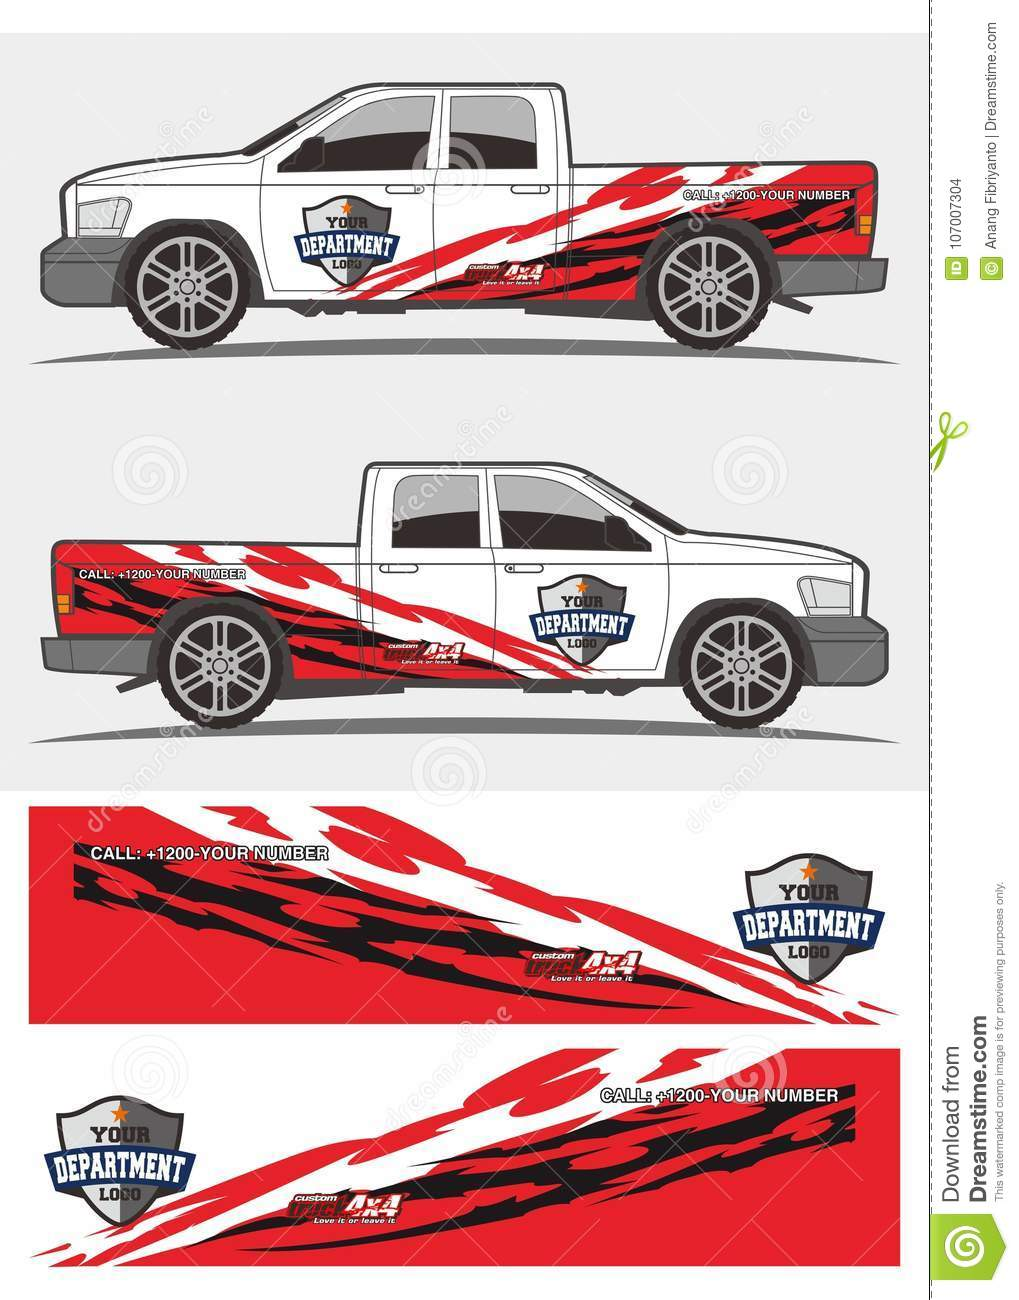 Vehicle and truck truck and vehicle decal graphics kits design tribal graphics kits for truck and other vehicles decals and stickers decal design kits